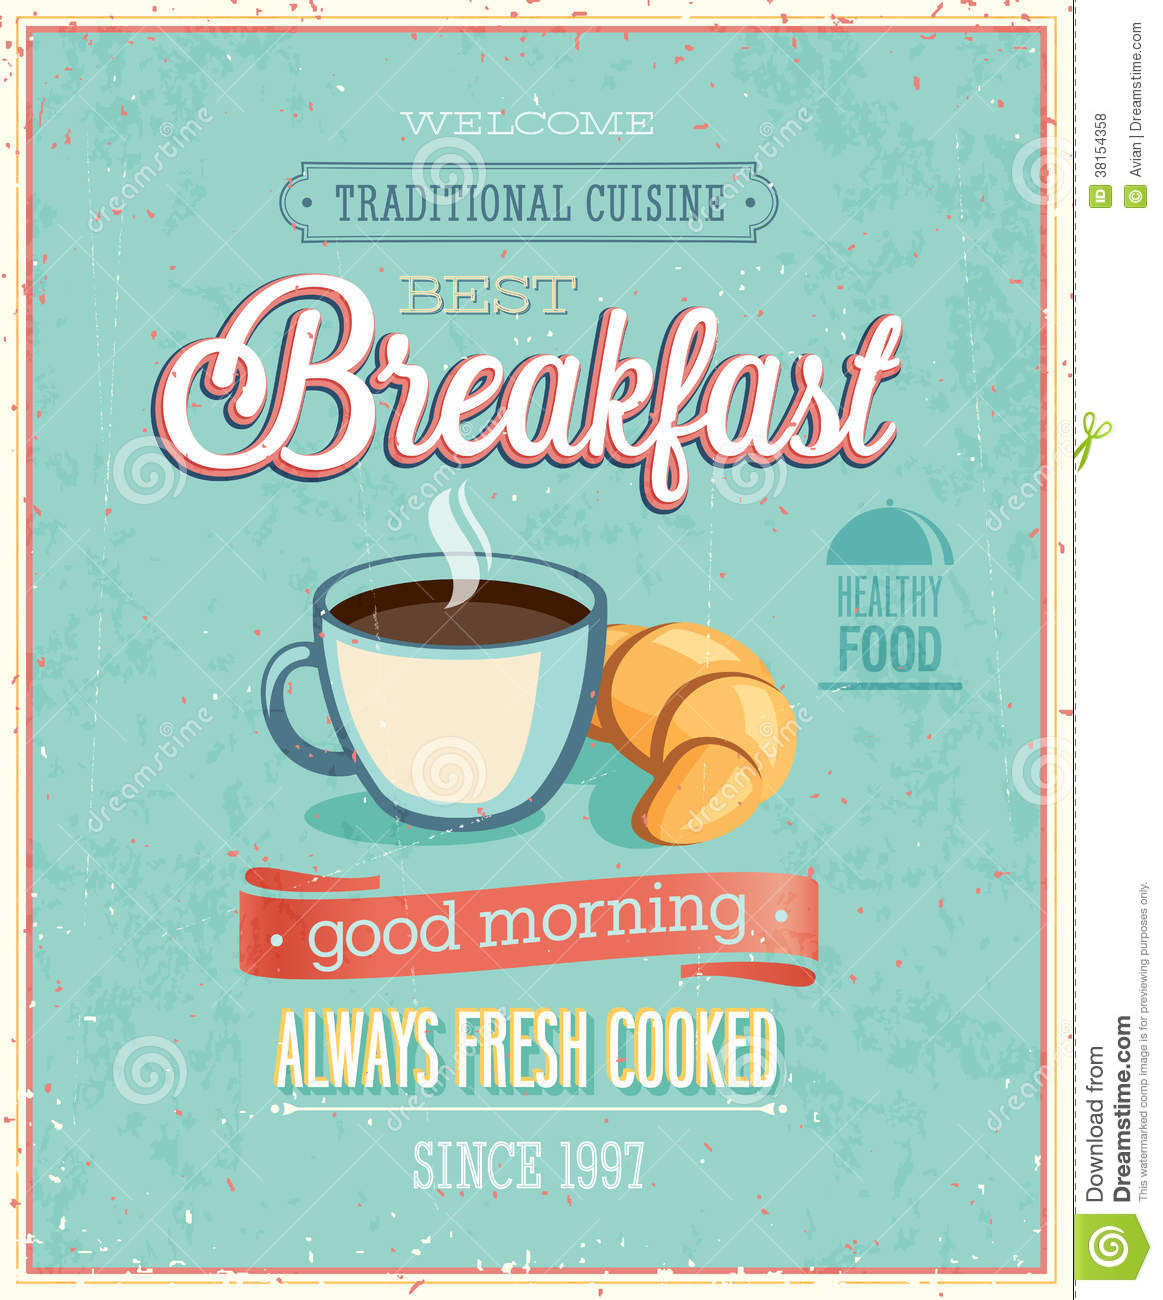 Vintage Breakfast Poster. Royalty Free Stock Photos - Image: 38154358